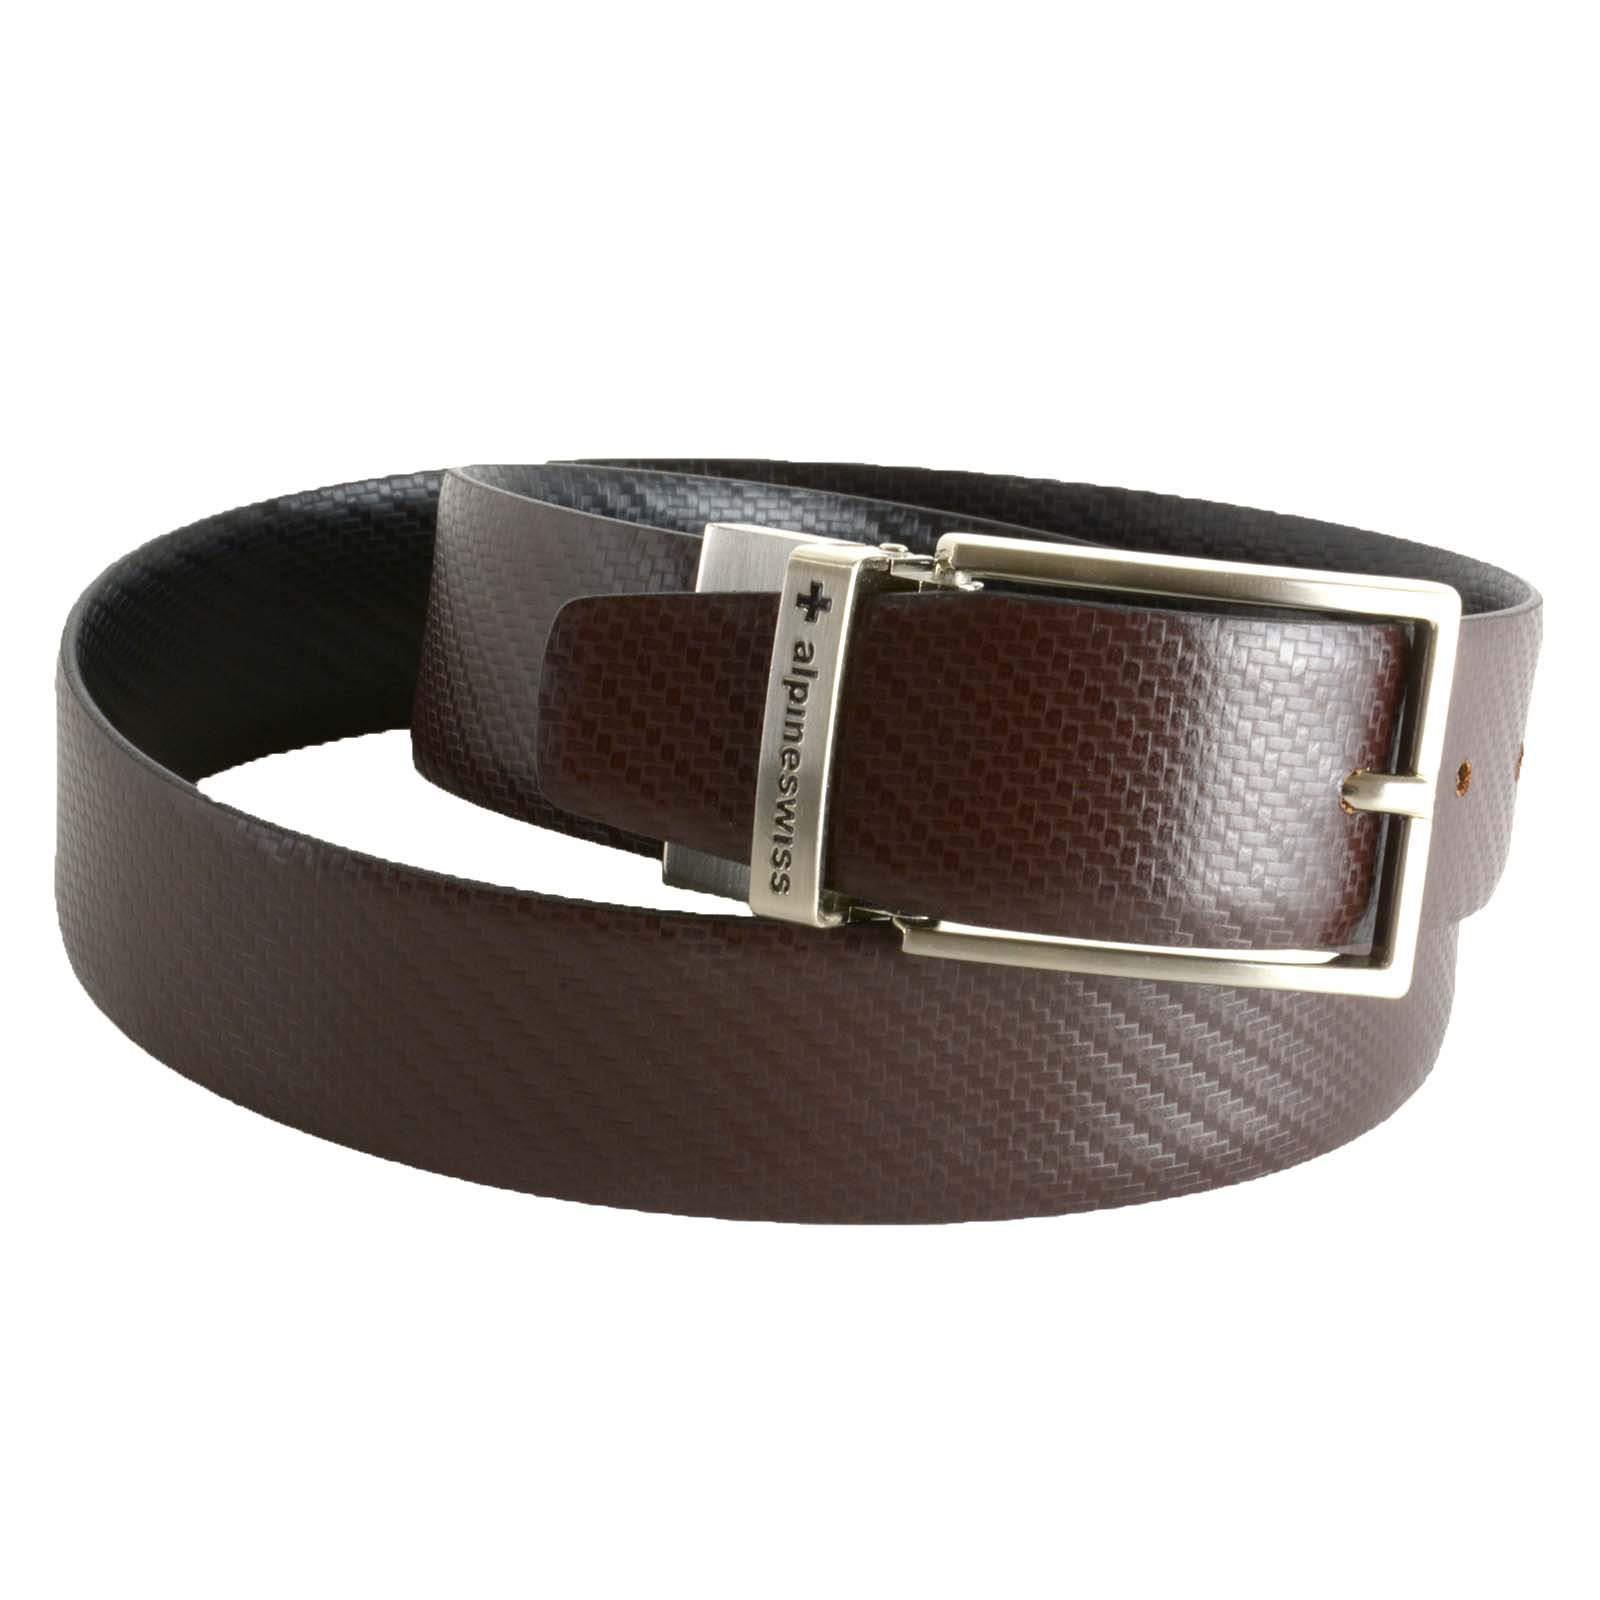 Alpine-Swiss-Mens-Dress-Belt-Reversible-Black-Brown-Leather-Imported-from-Spain thumbnail 11